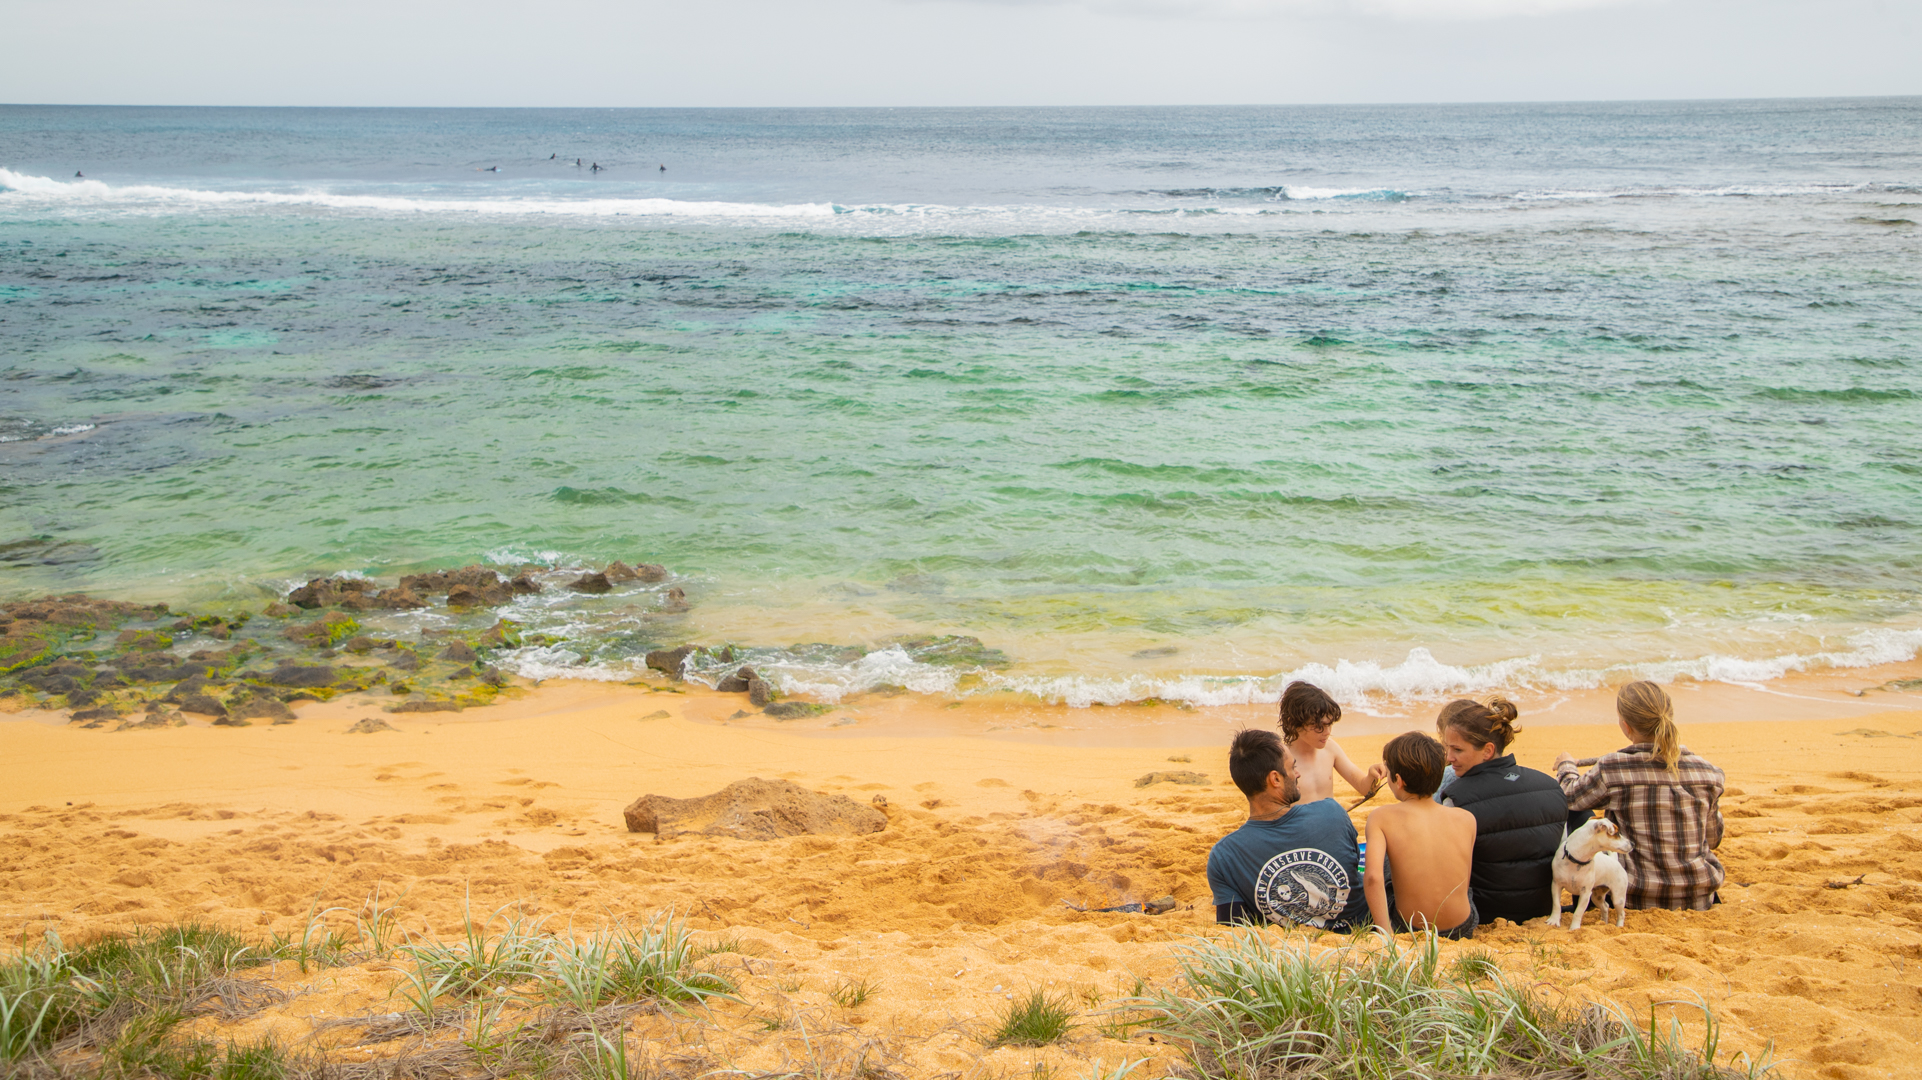 Family with their dog sitting on the shore with gentle waves breaking over rocks and the golden sand. Surfers in the water are visible in the distance.